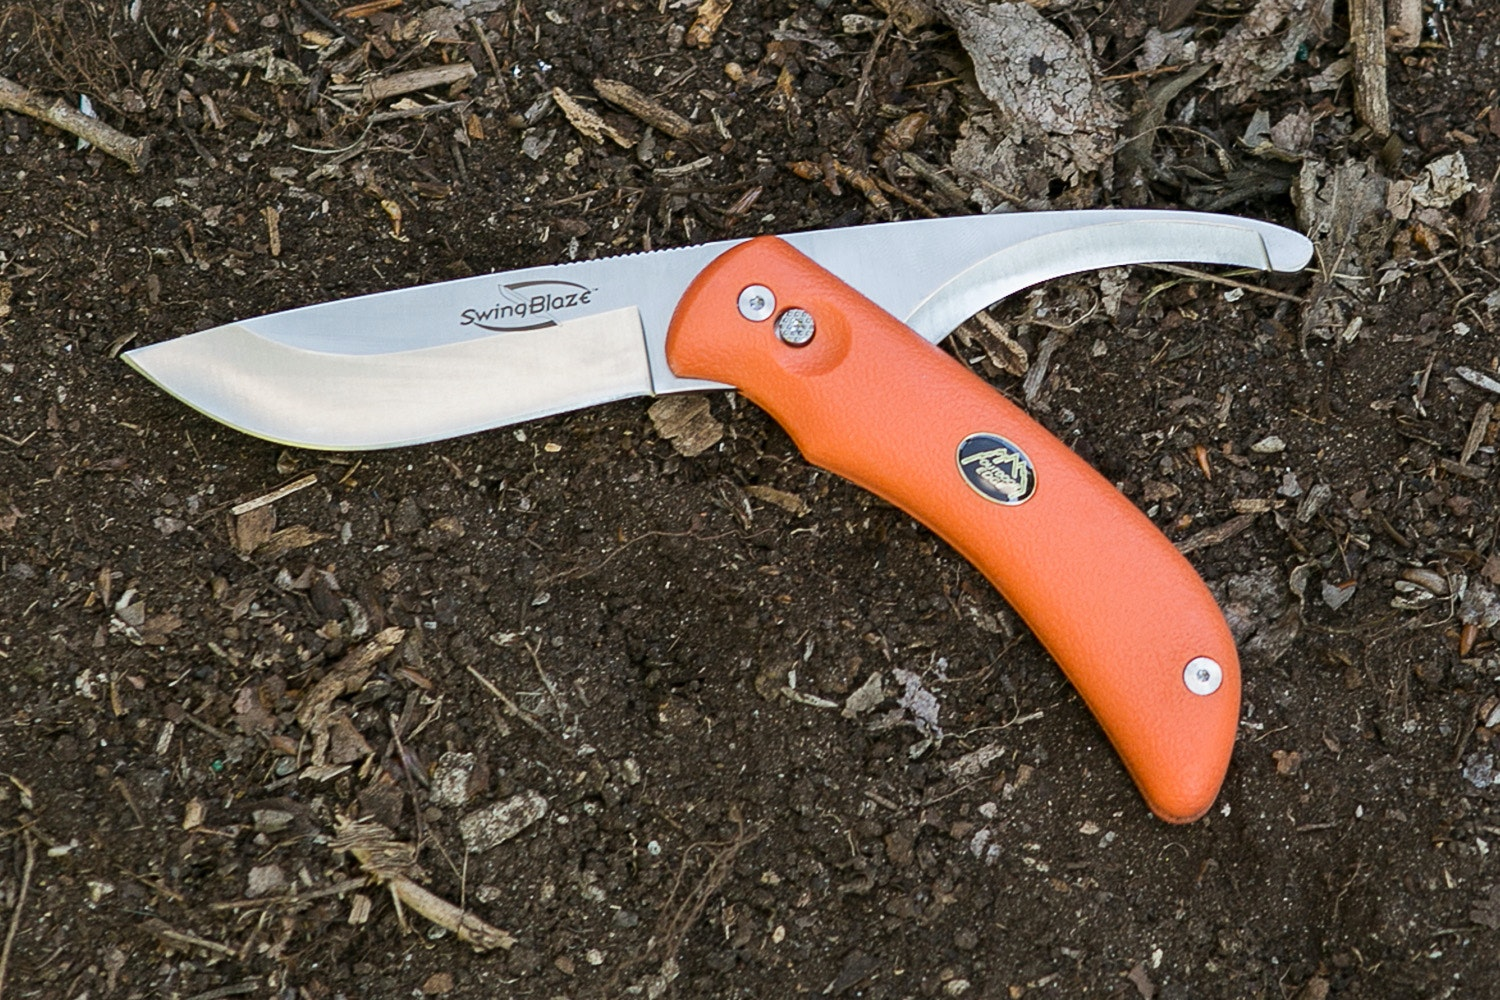 Outdoor Edge SwingBlade Series